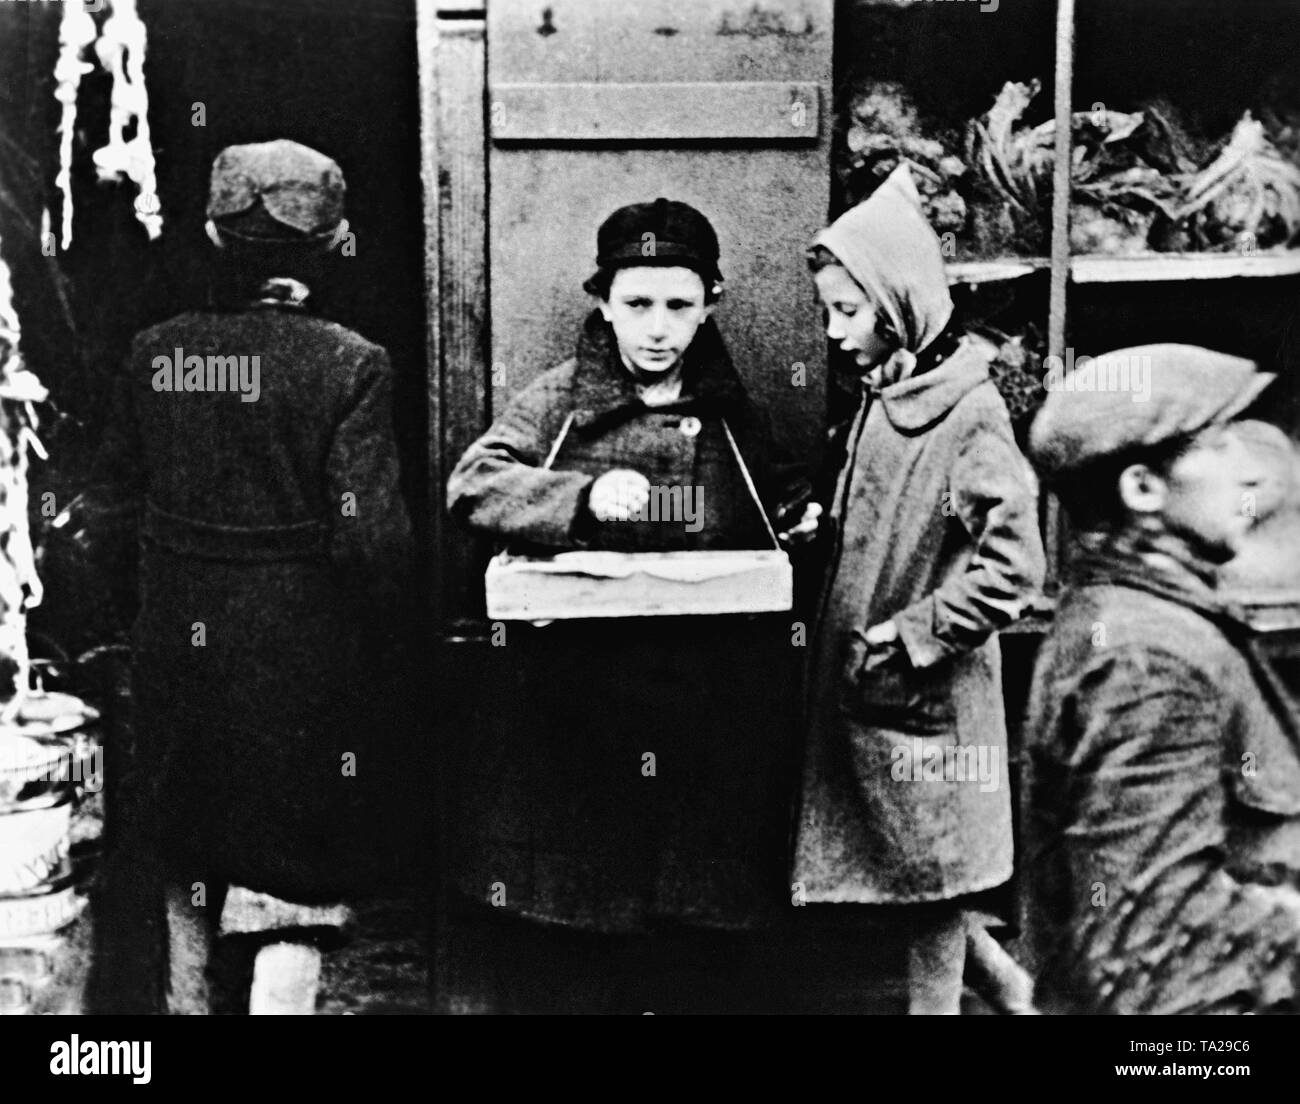 Scene from the Nazi propaganda film 'The Eternal Jew' (directed by Fritz Hippler, Germany 1940), in which, through the Polish Jews, is defamed the entire Judaism. - Stock Image